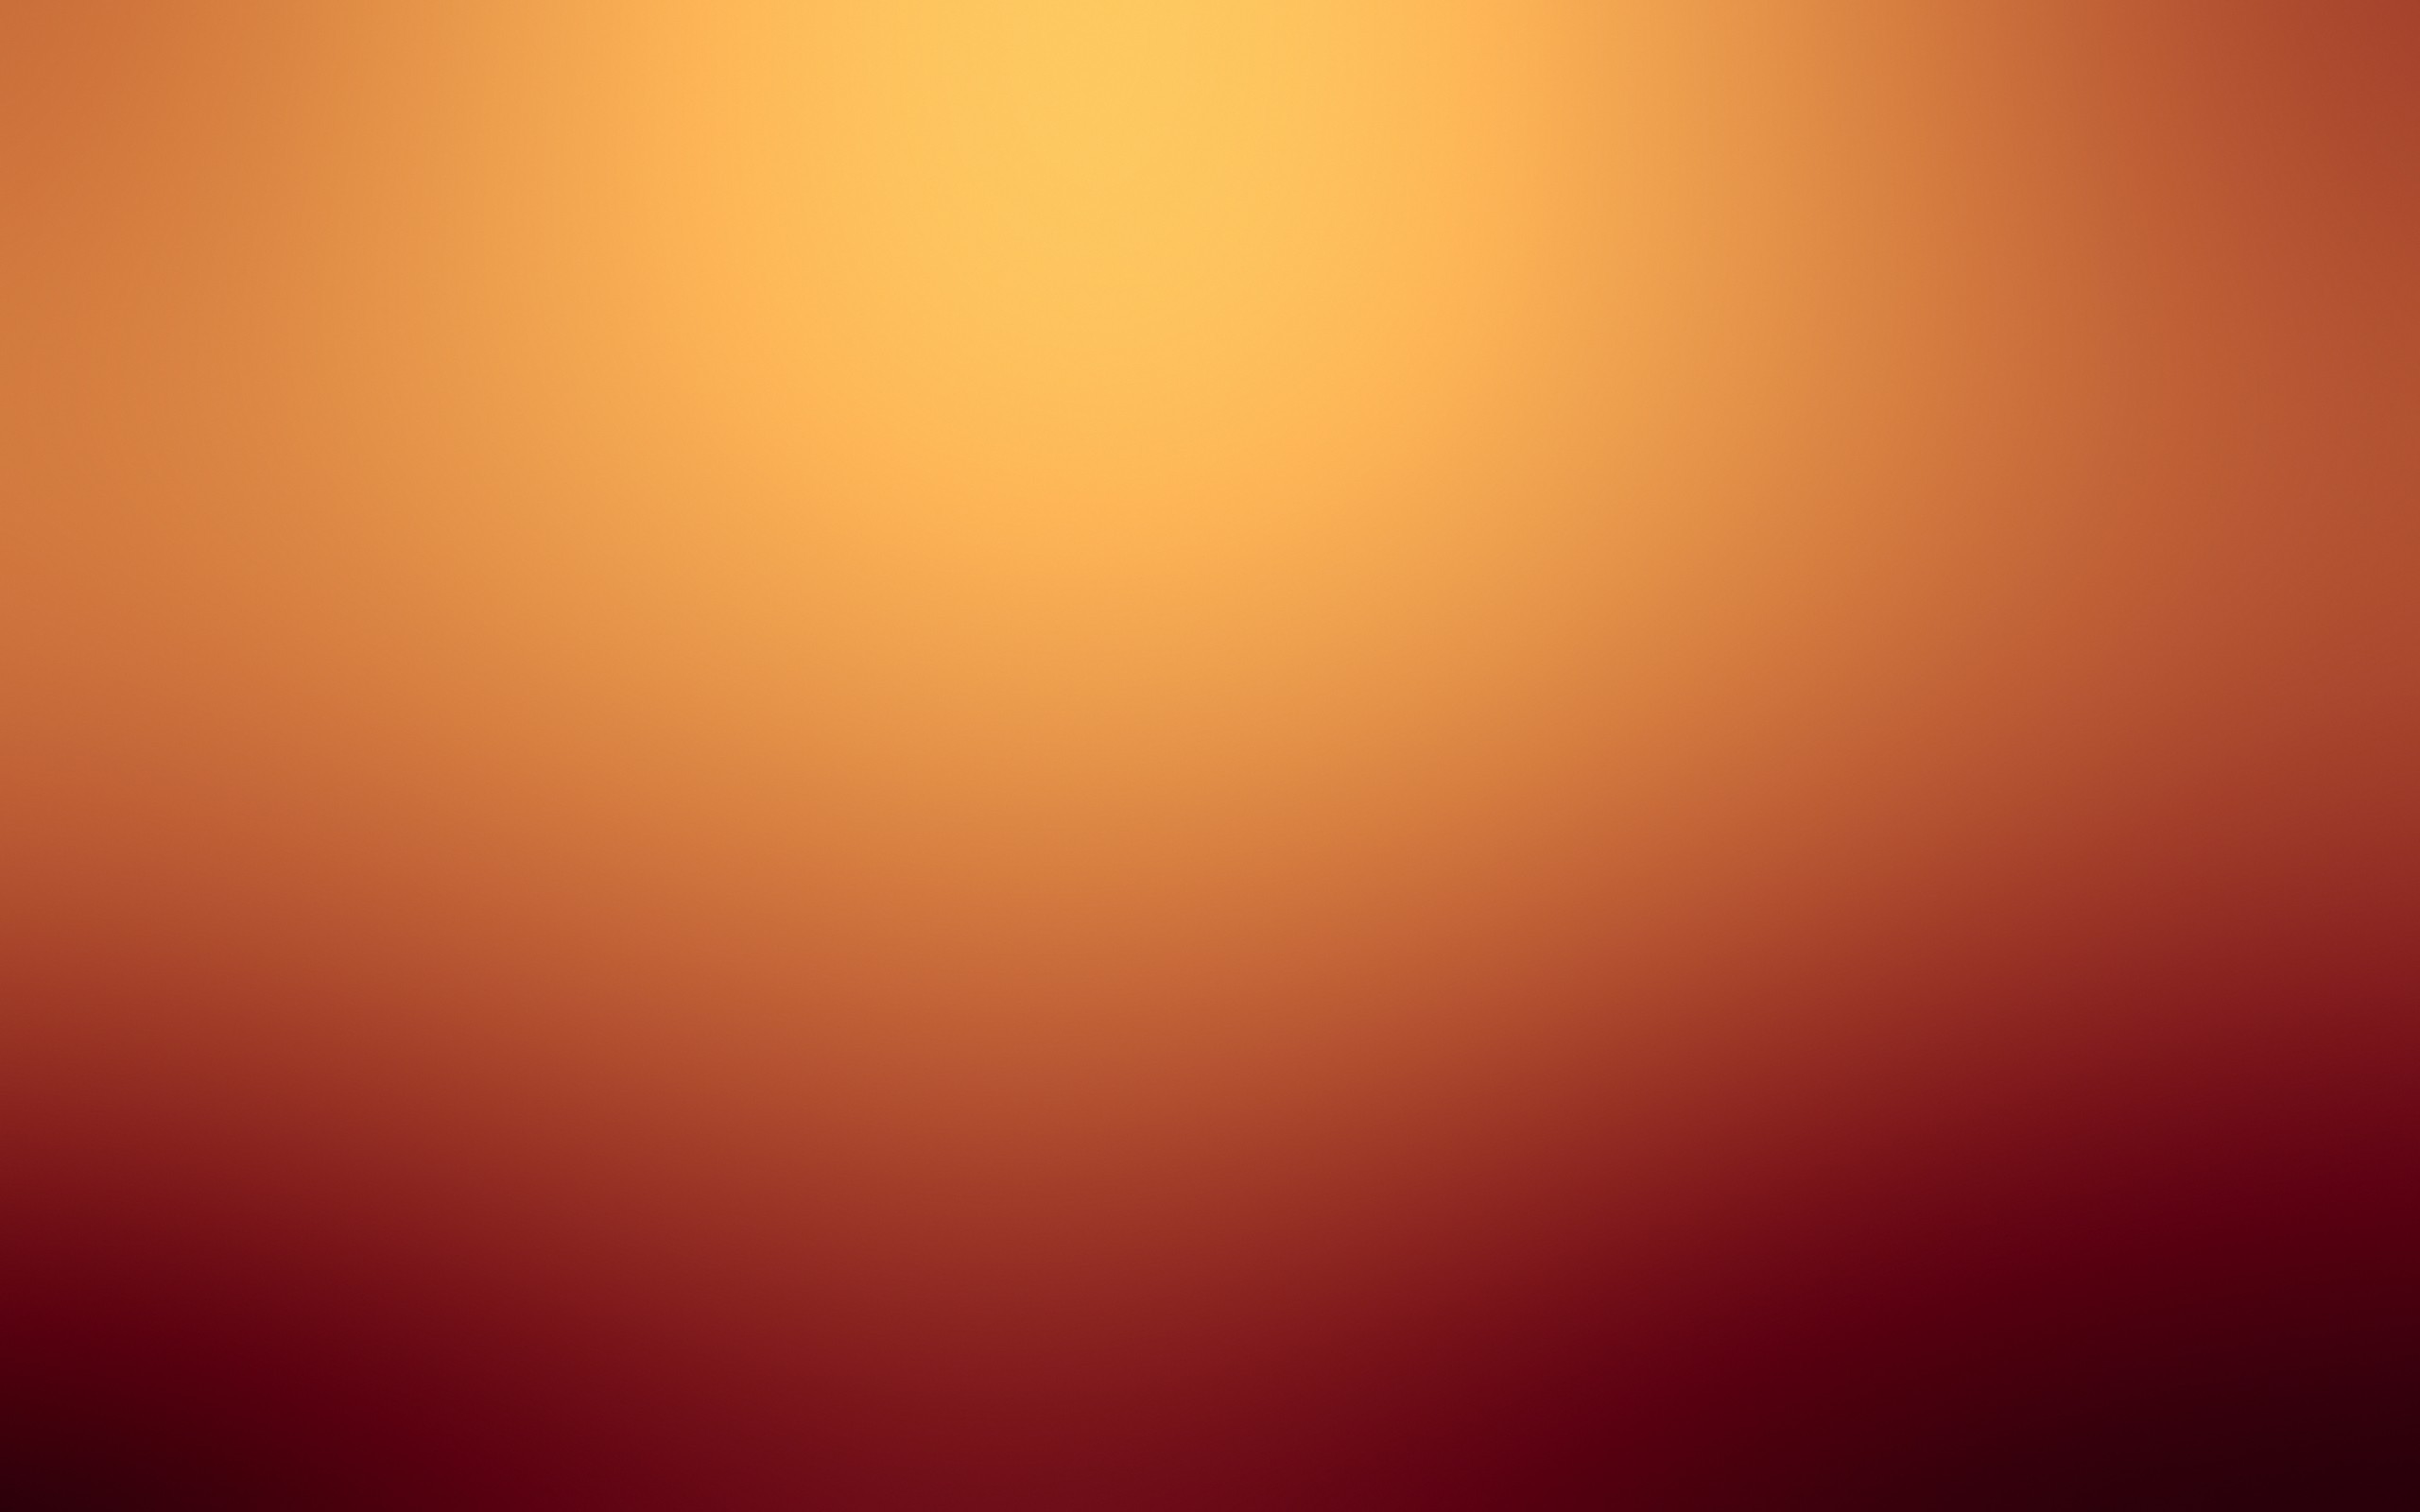 orange backgrounds HD Wallpaper